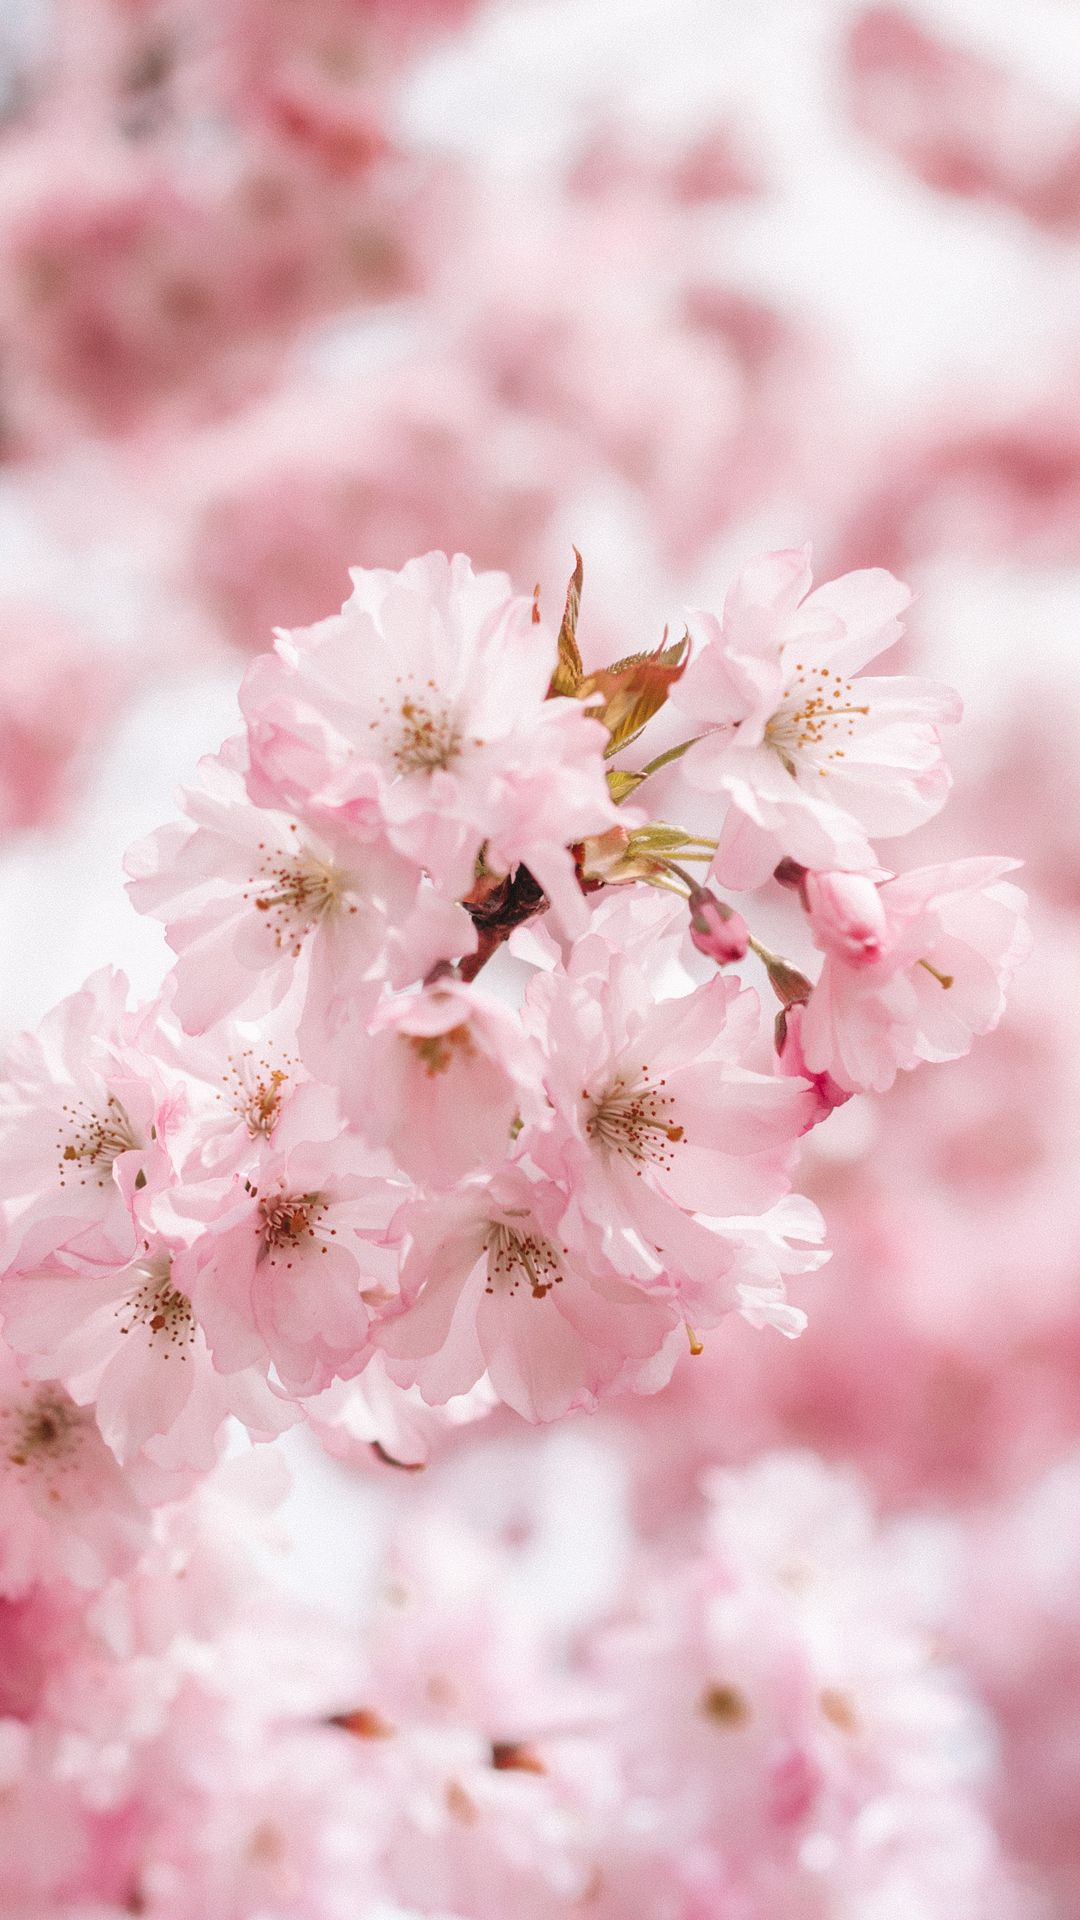 64e647b0af A cherry blossom wallpaper you can use to brighten up your phone ...